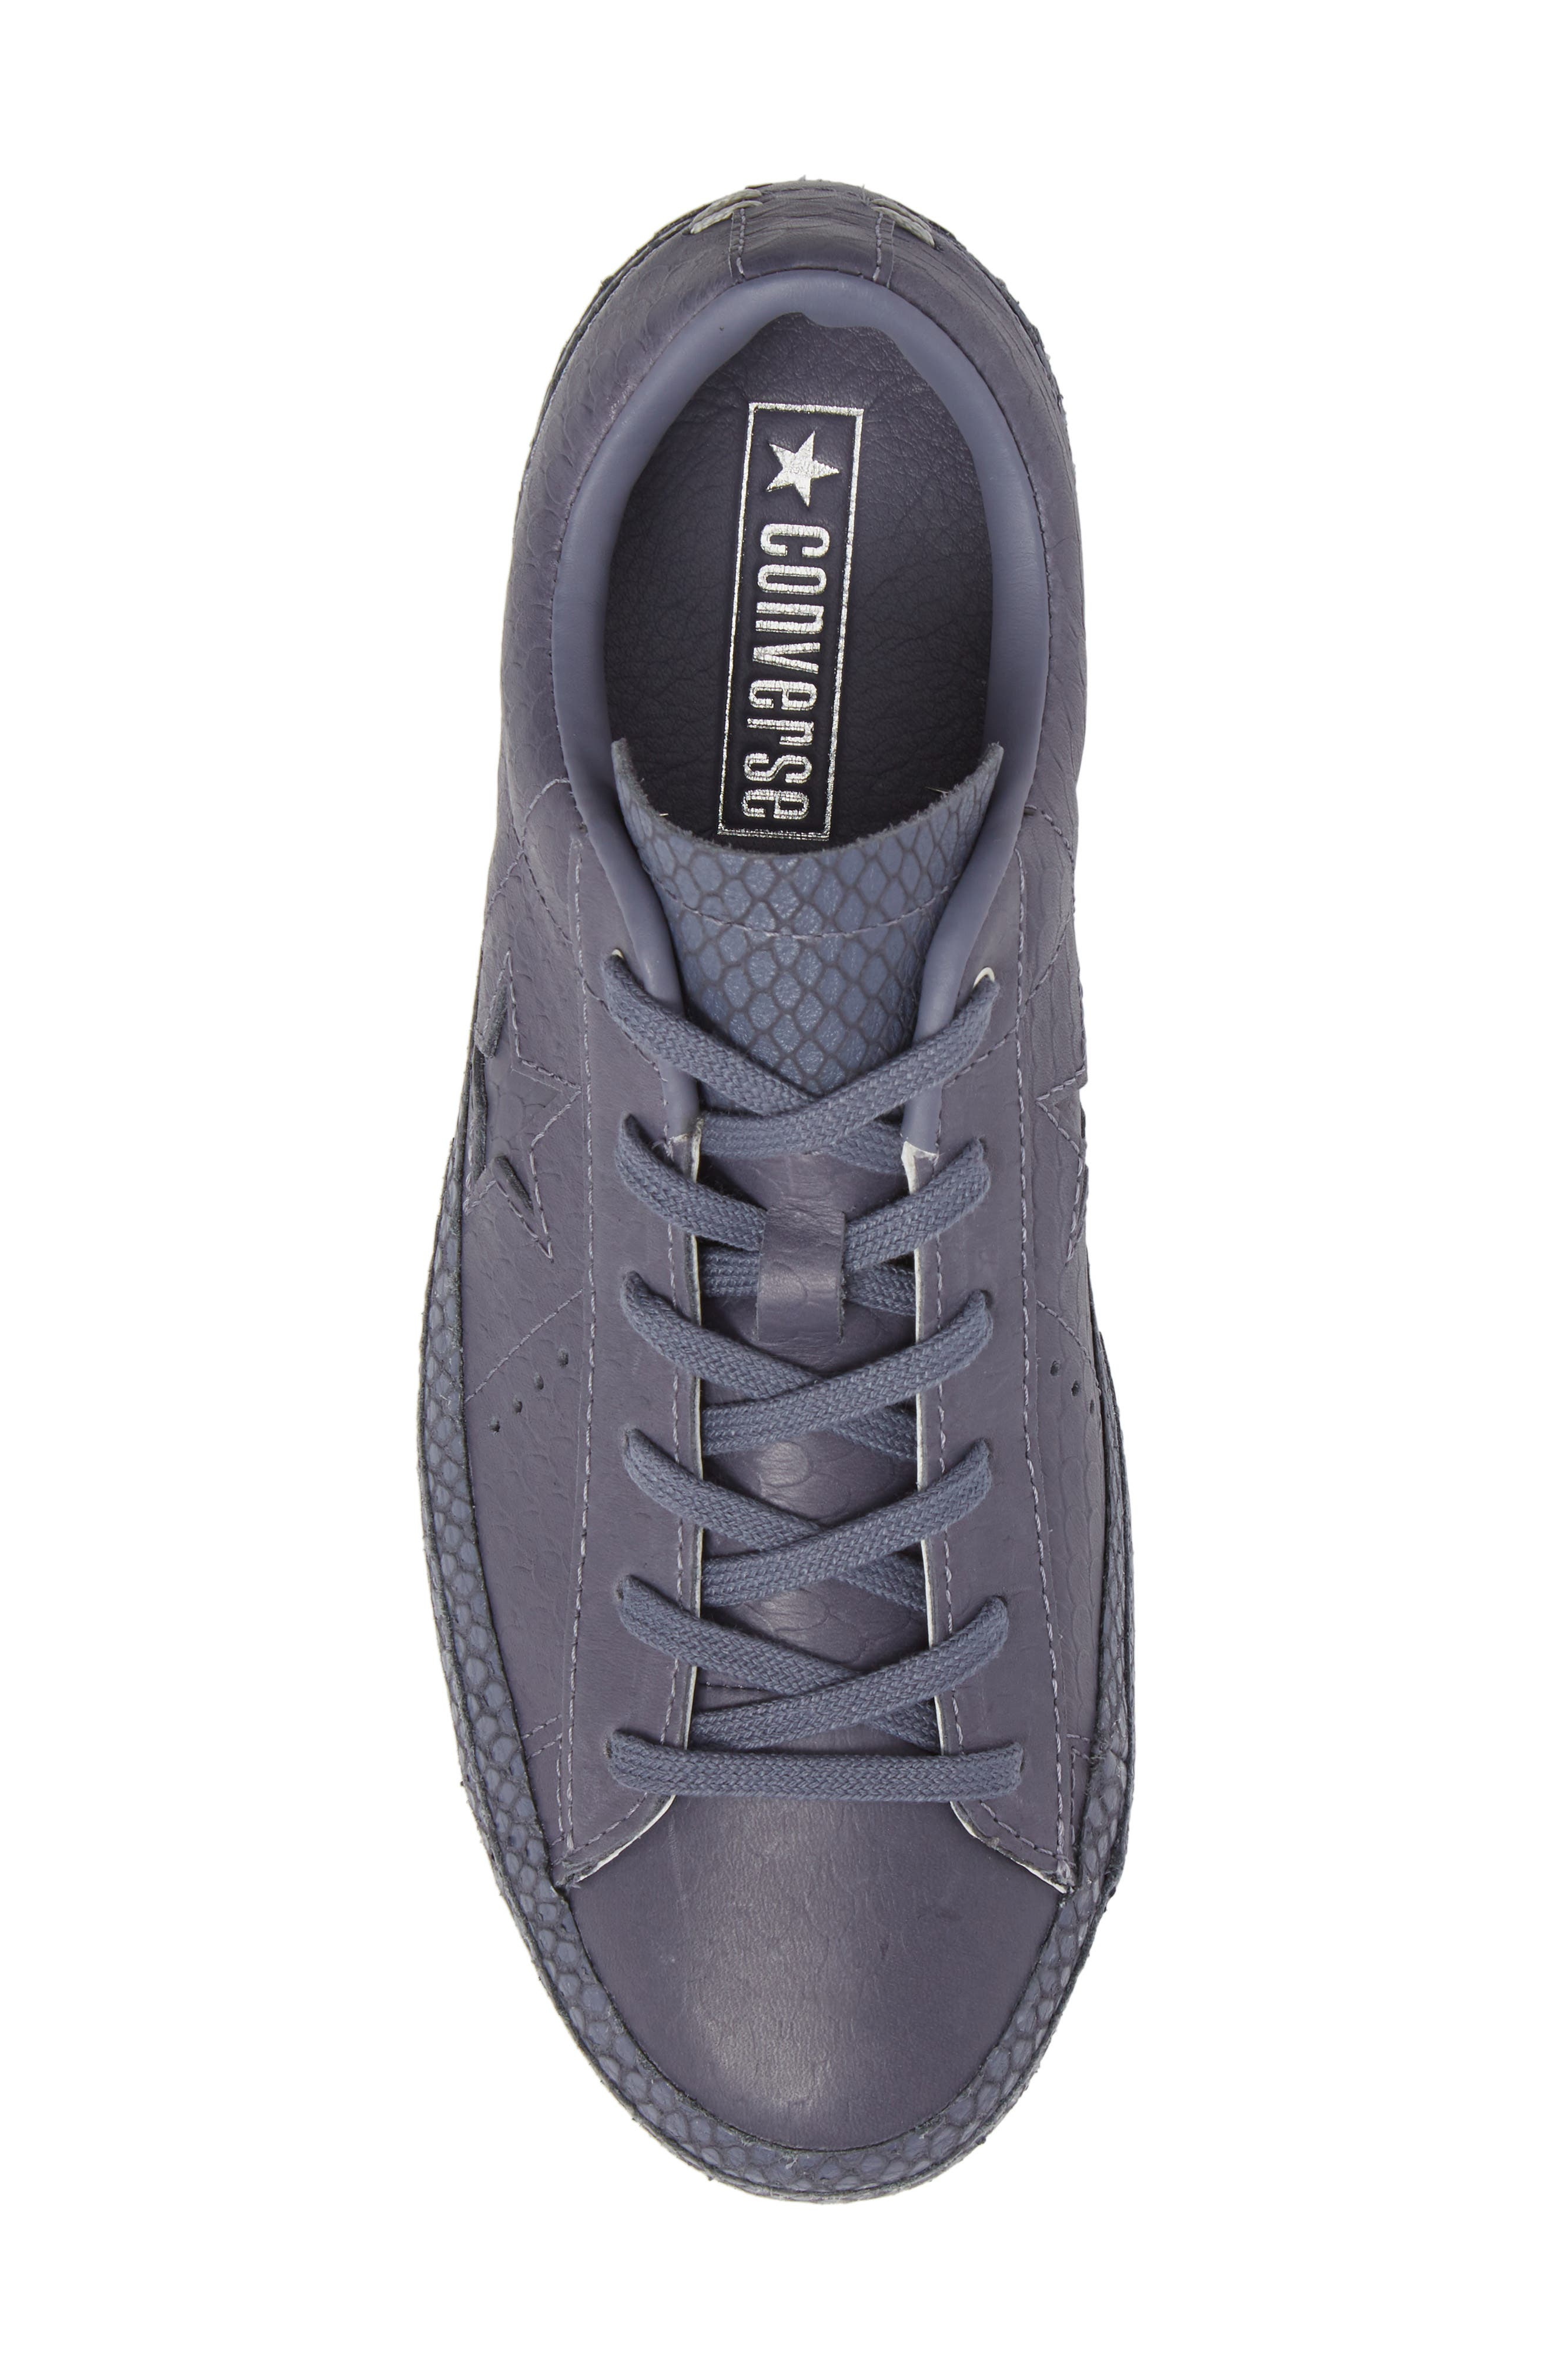 Chuck Taylor<sup>®</sup> All Star<sup>®</sup> One Star Platform Sneaker,                             Alternate thumbnail 5, color,                             Light Carbon